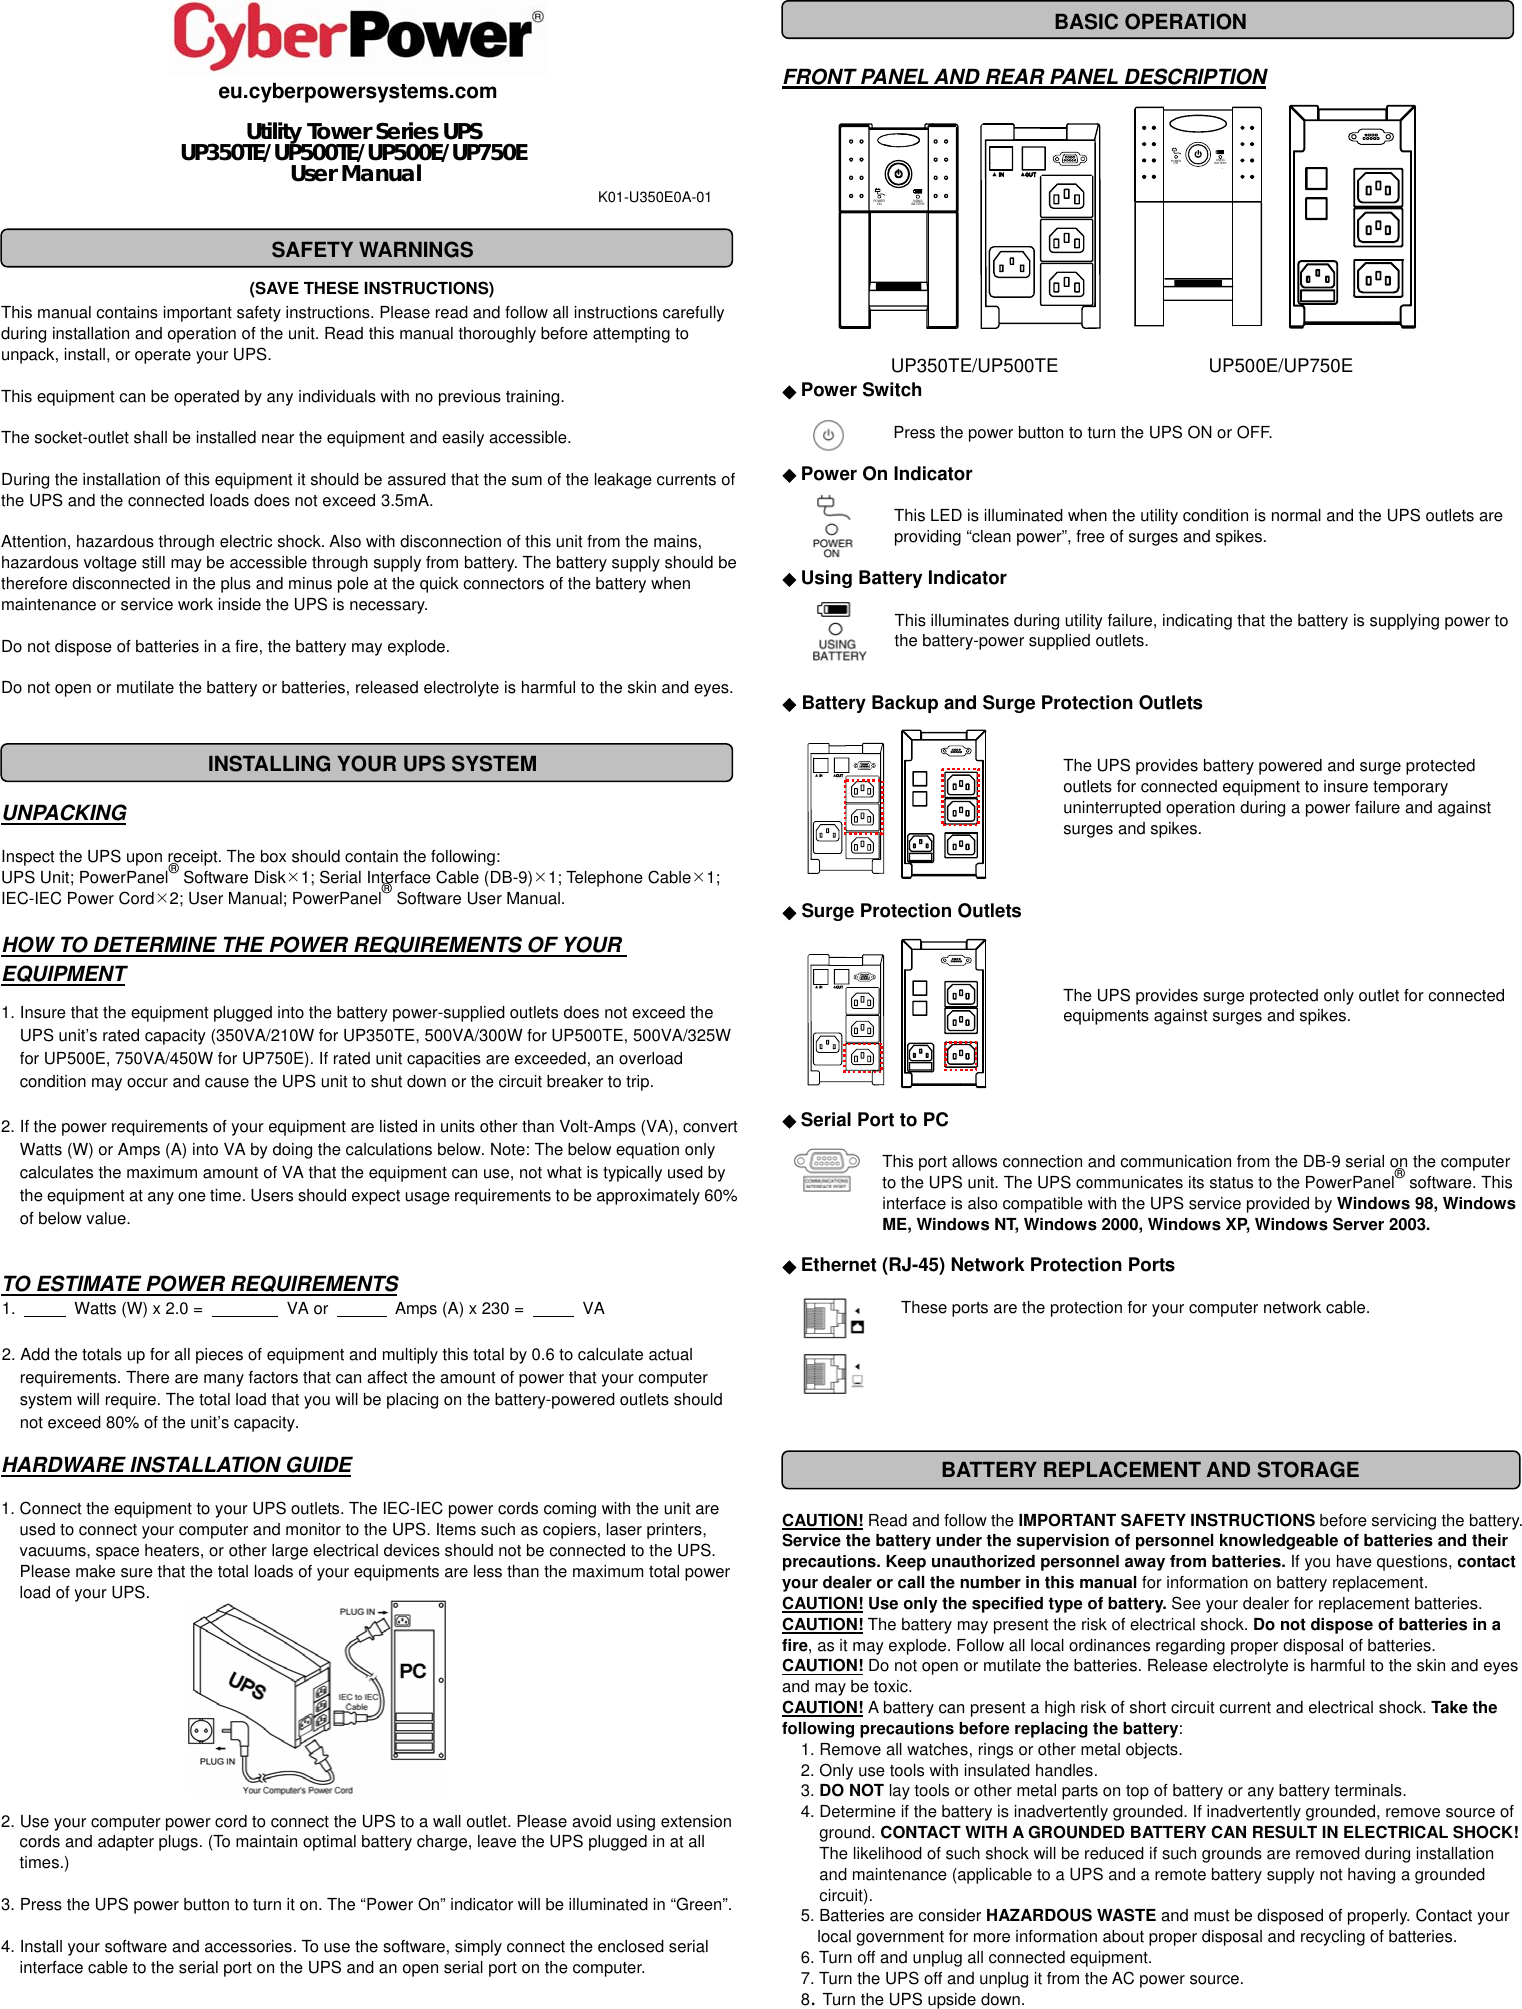 Cyberpower Utility Tower Series Ups Up350te Users Manual Save These Basic Uninterruptible Power Supply Circuit Instructions